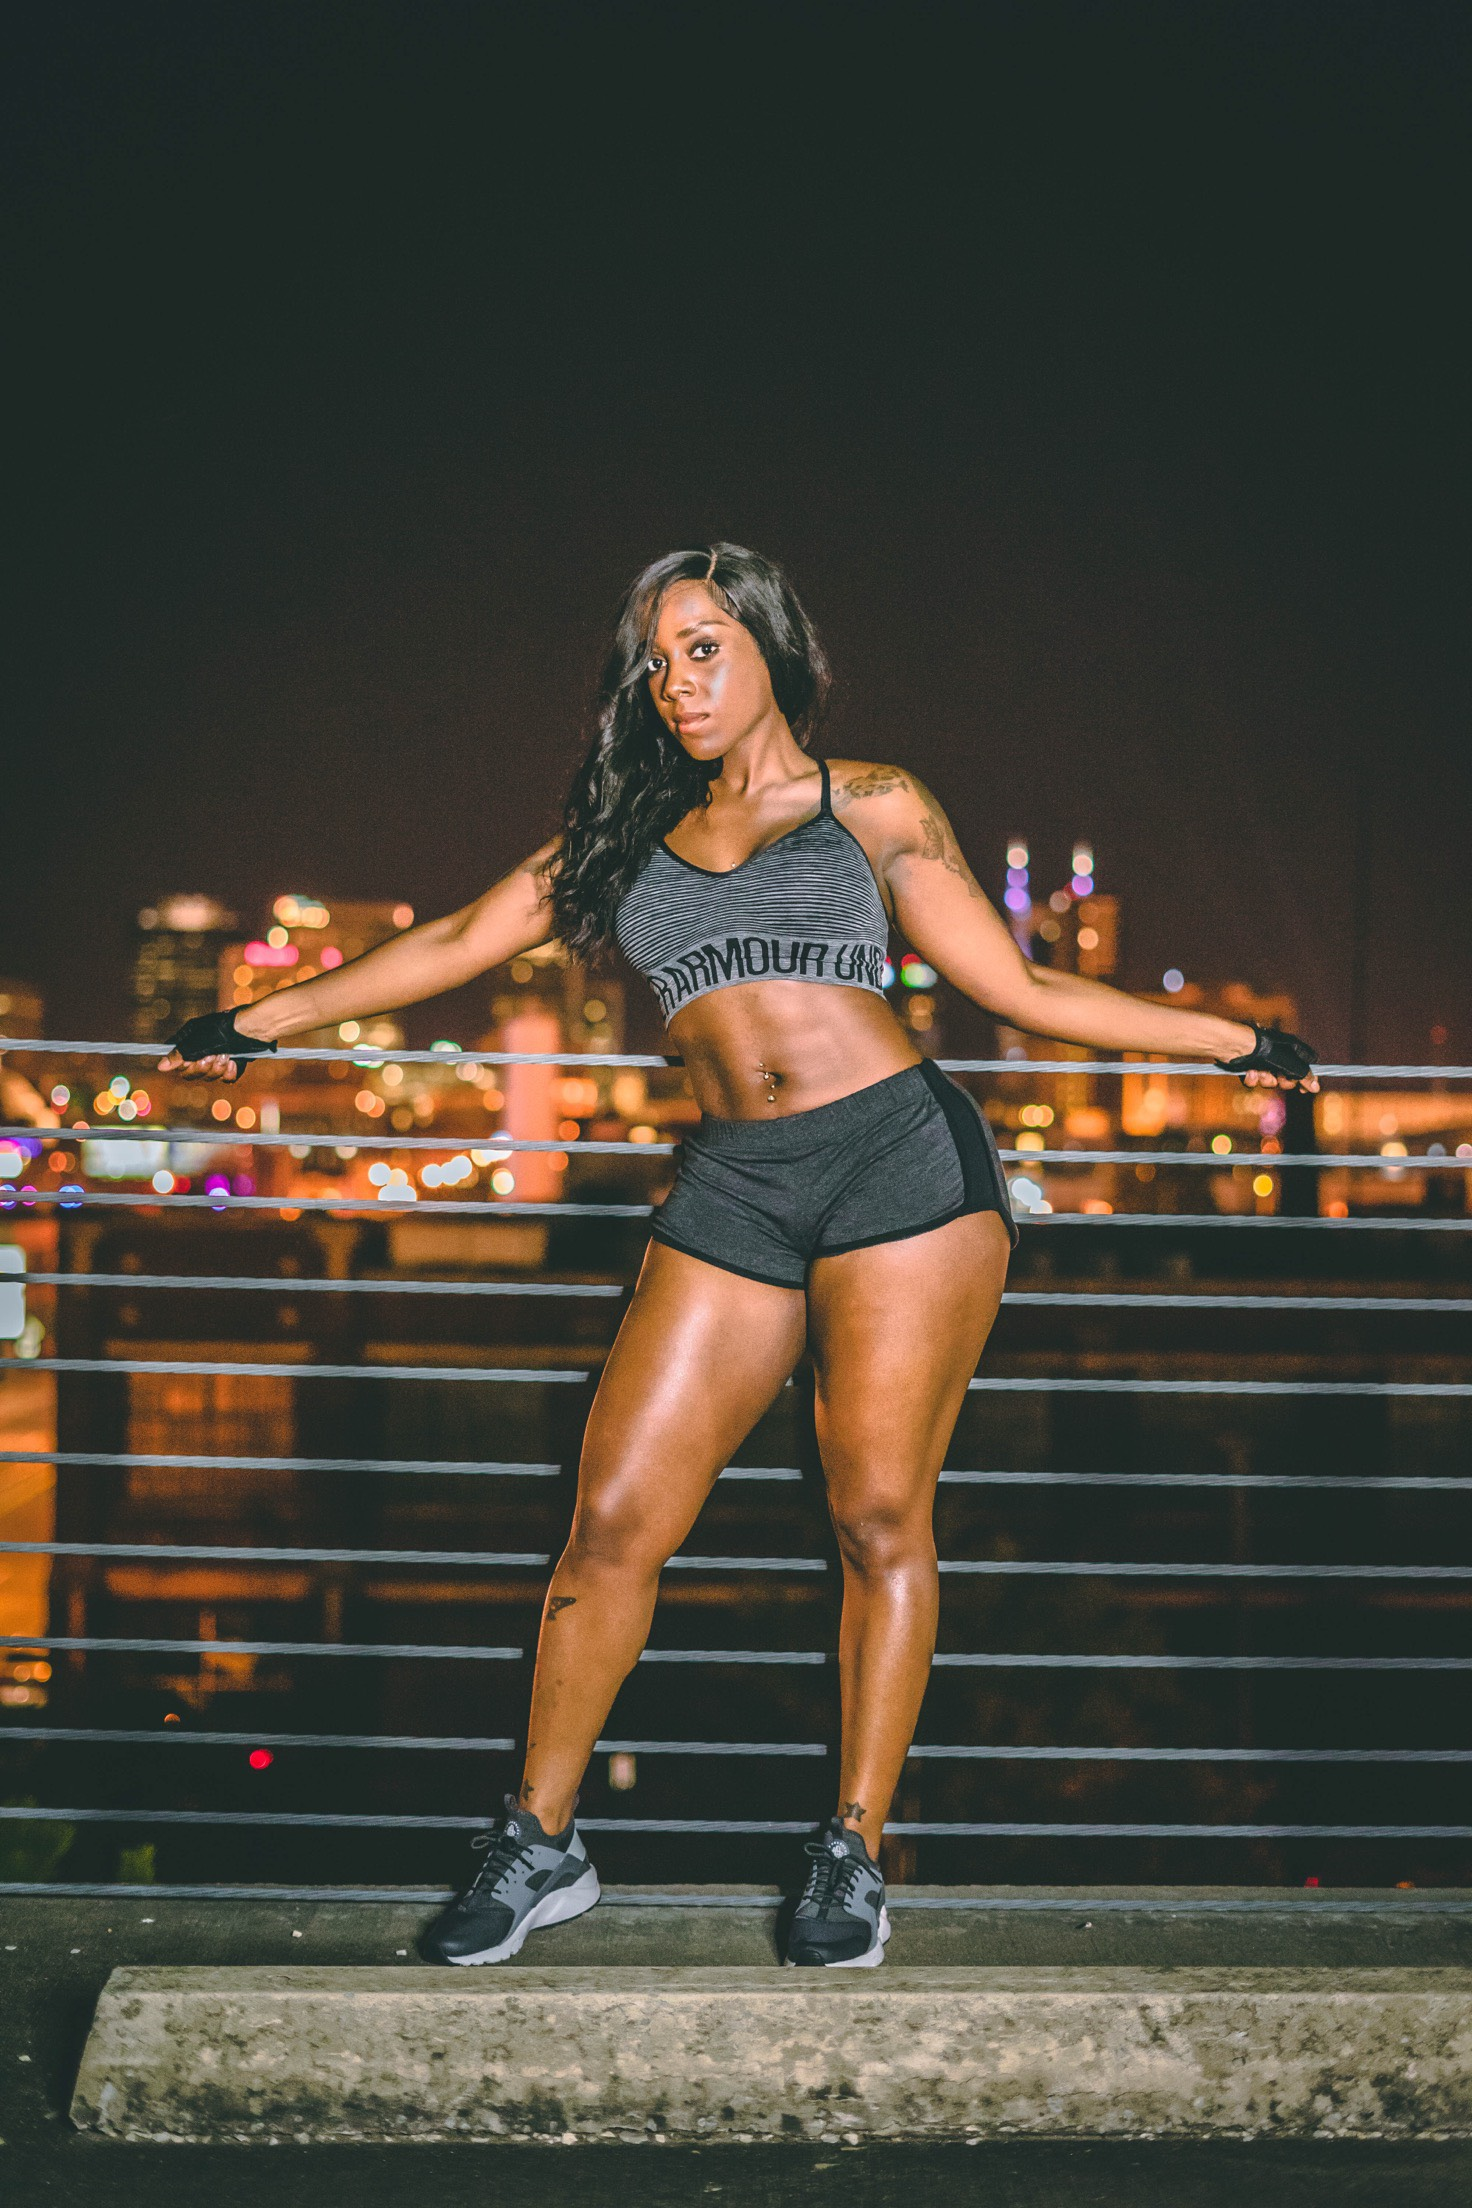 Build Your Body Inside & Out - With trainer lala